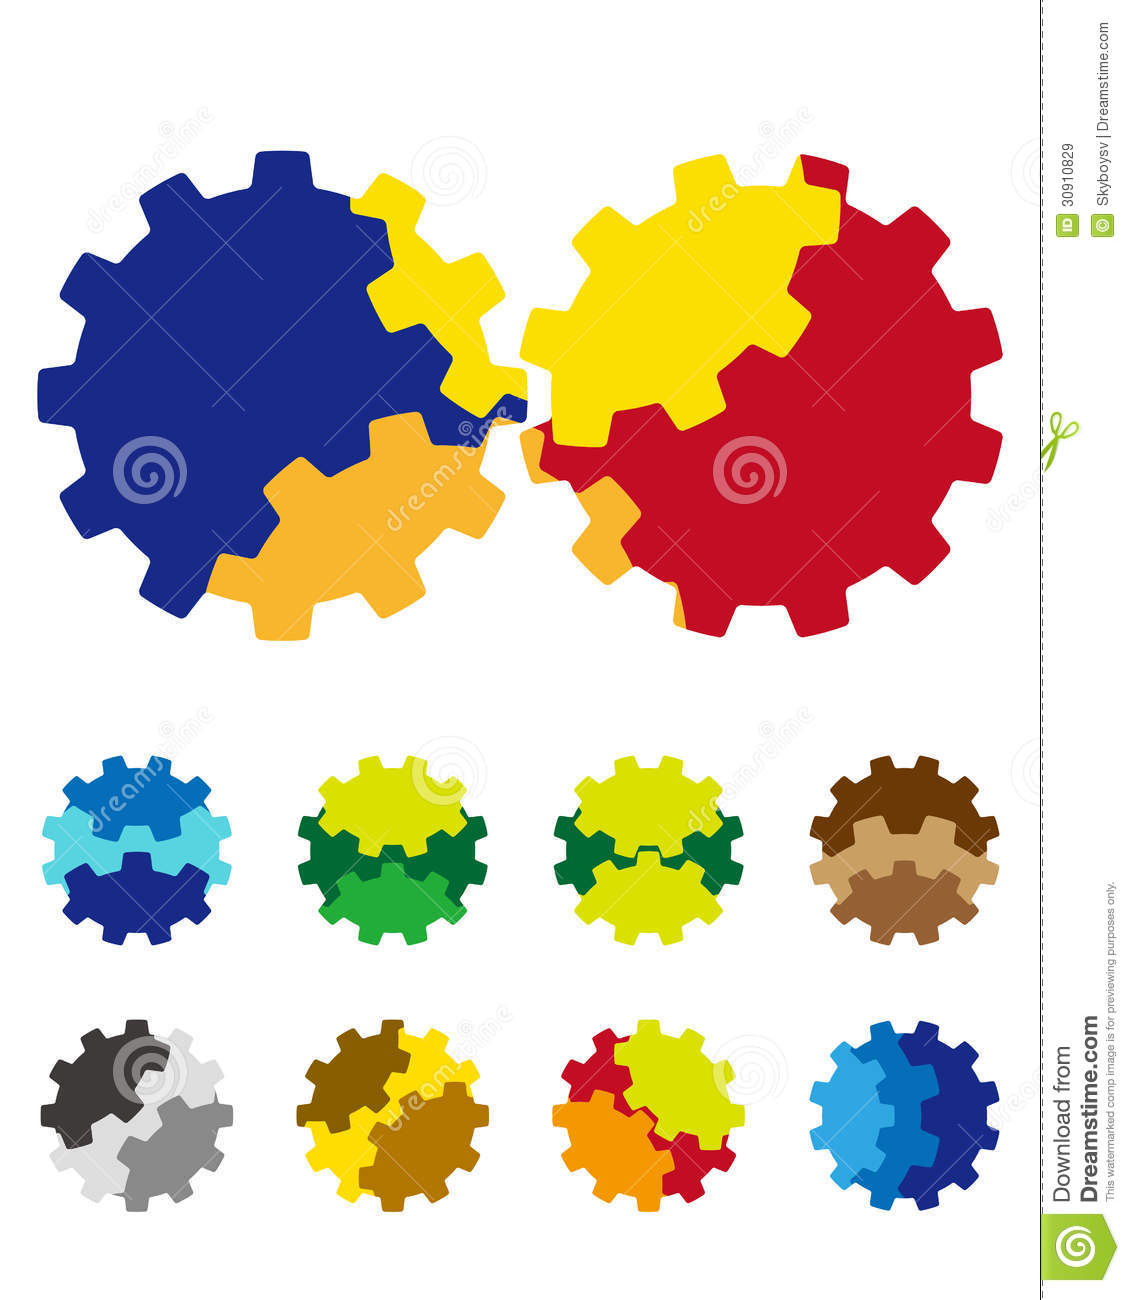 Design Vector Gears Logo Element Royalty Free Stock Images - Image ...